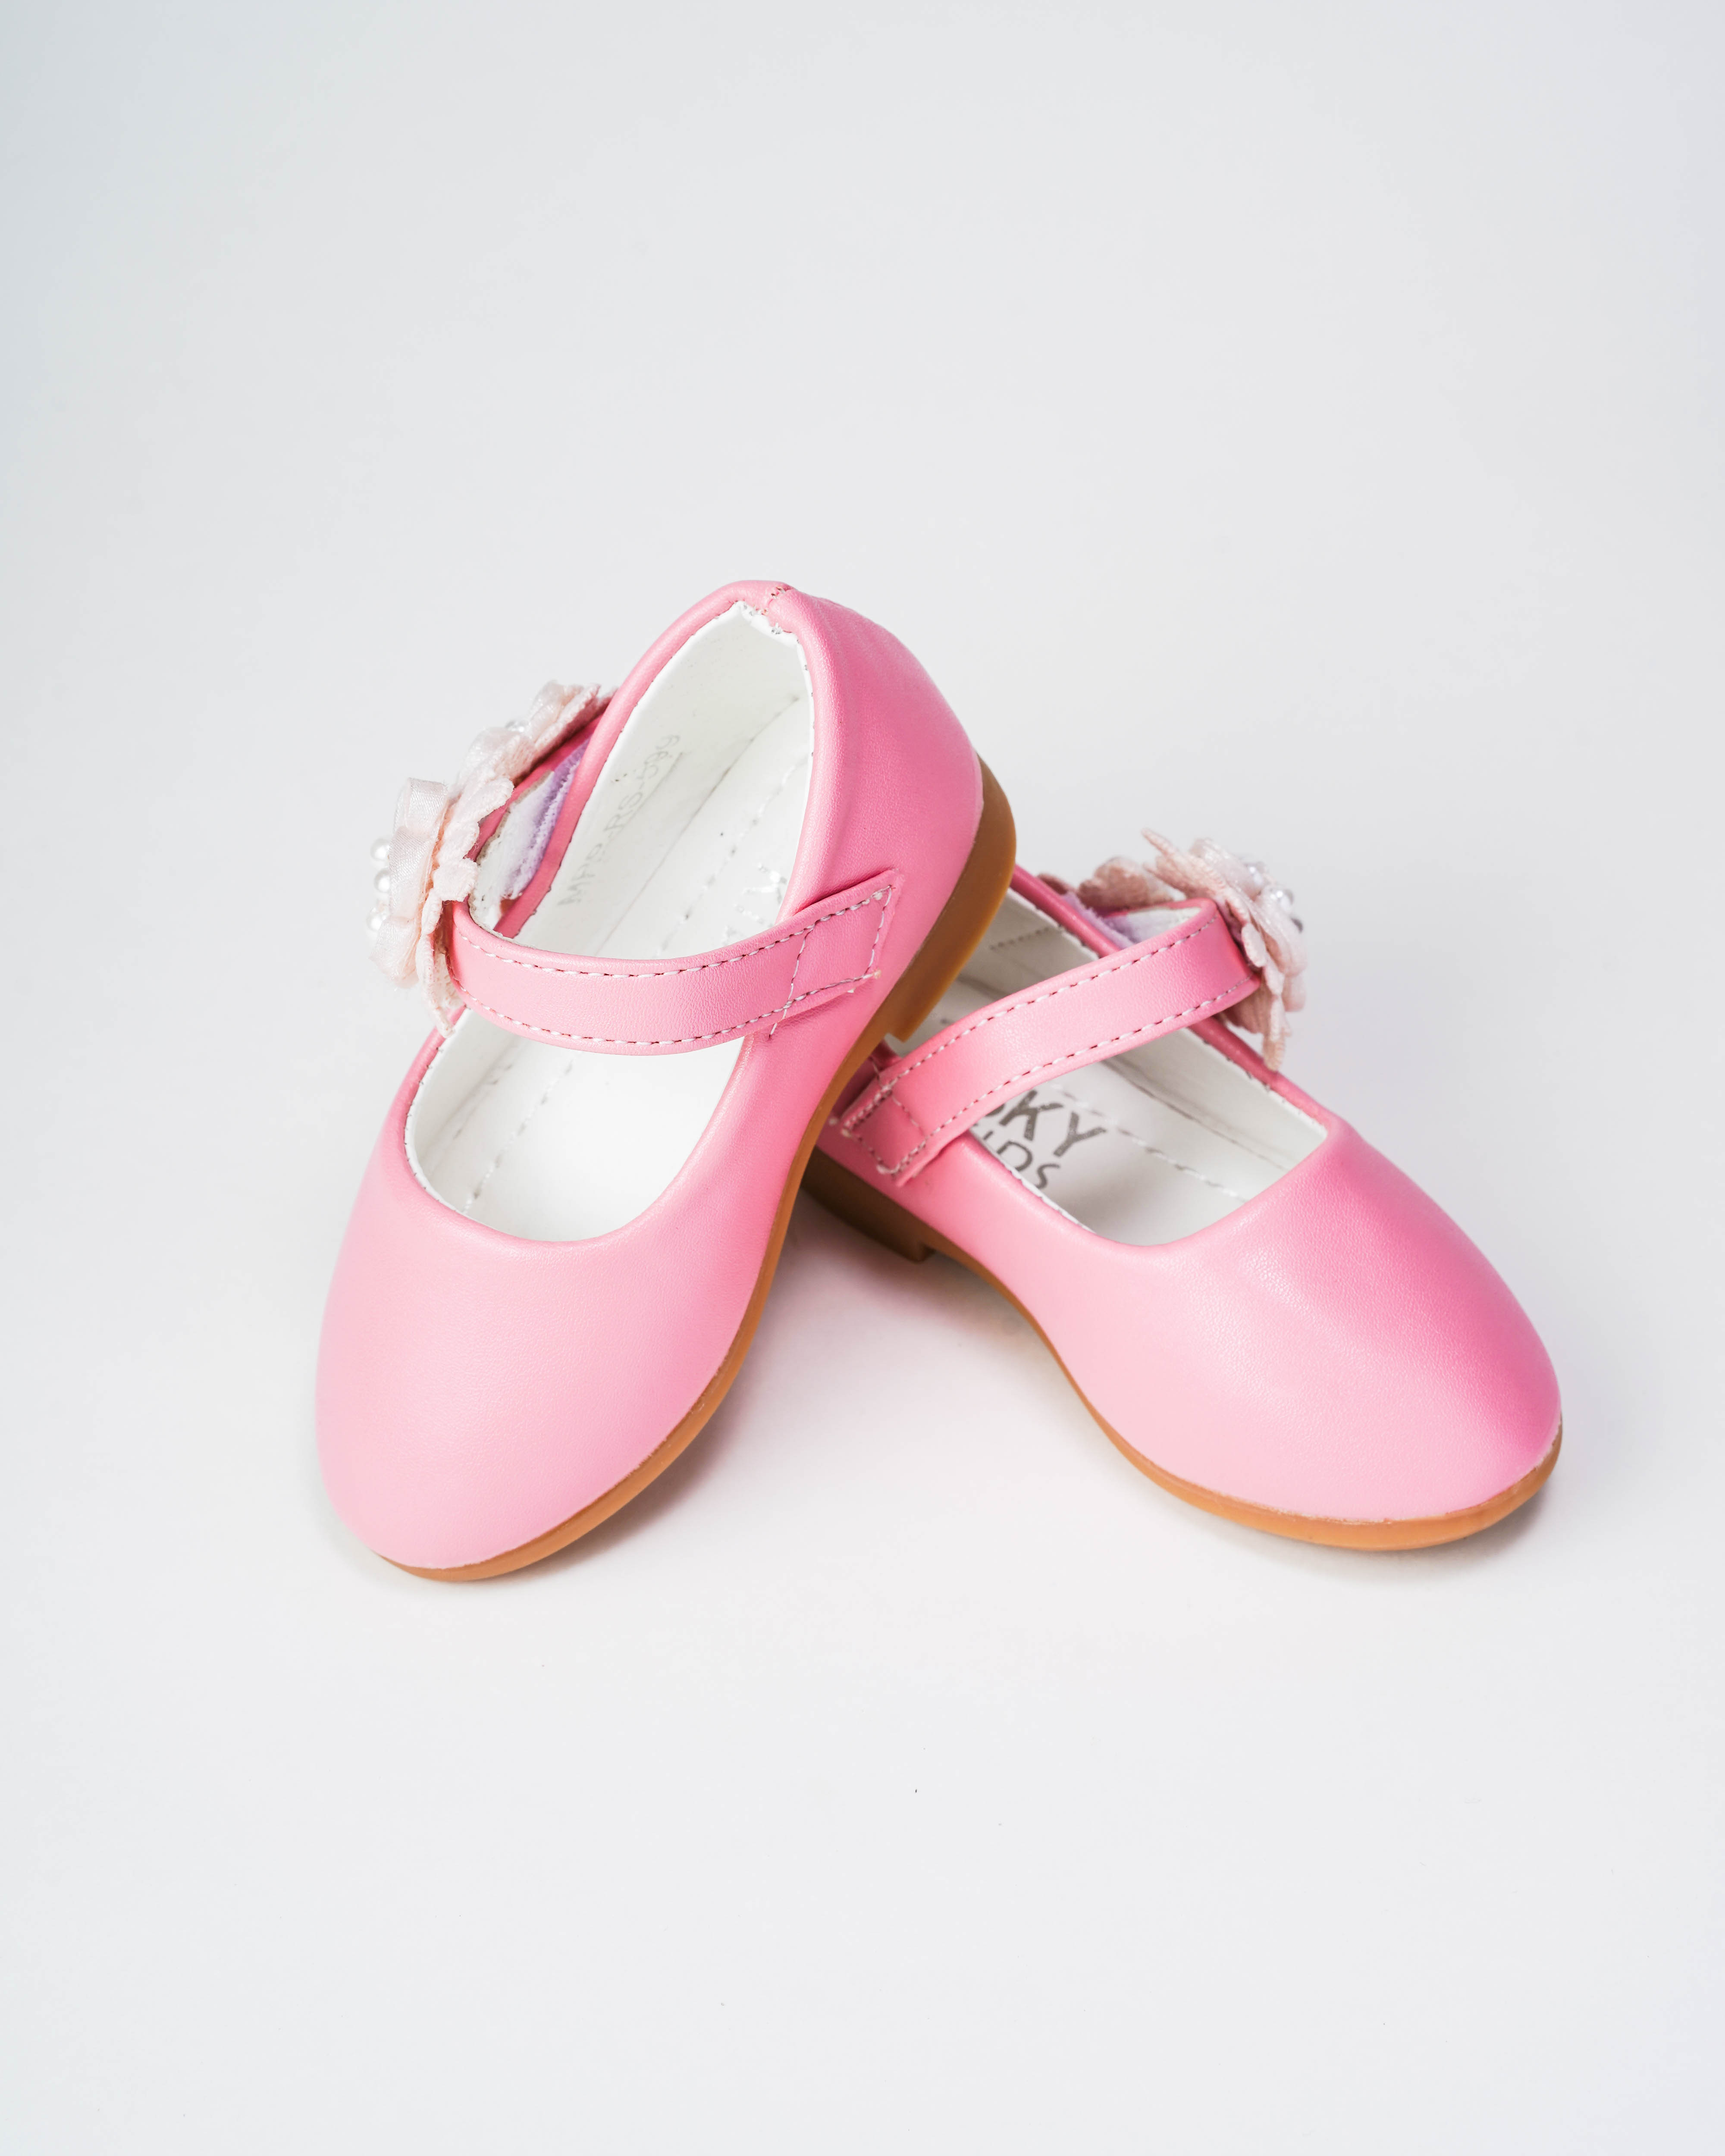 MACAW 7135 PINK